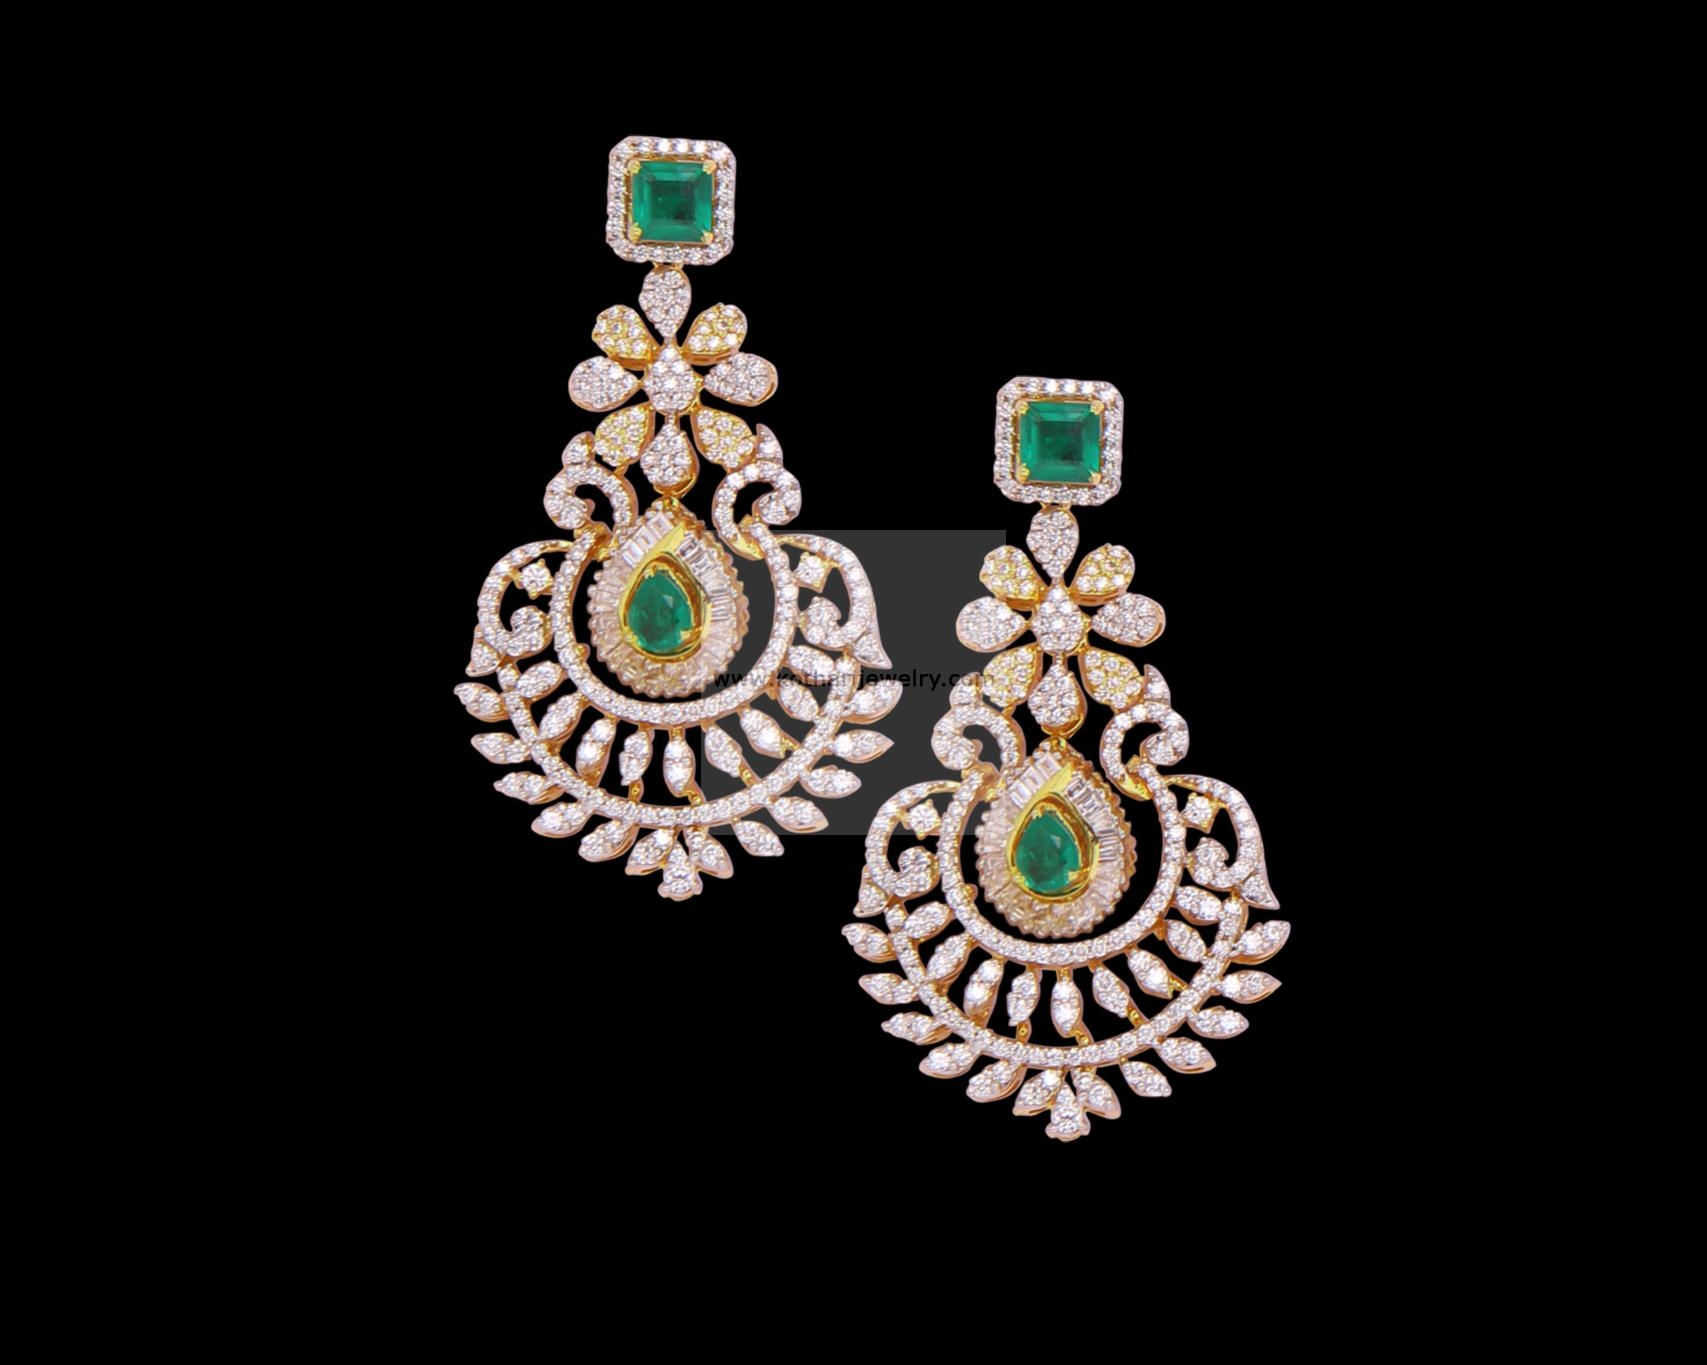 bridal diamond in online p atlanta american and set gold jewelry rubies indian stunning with islamic kundan